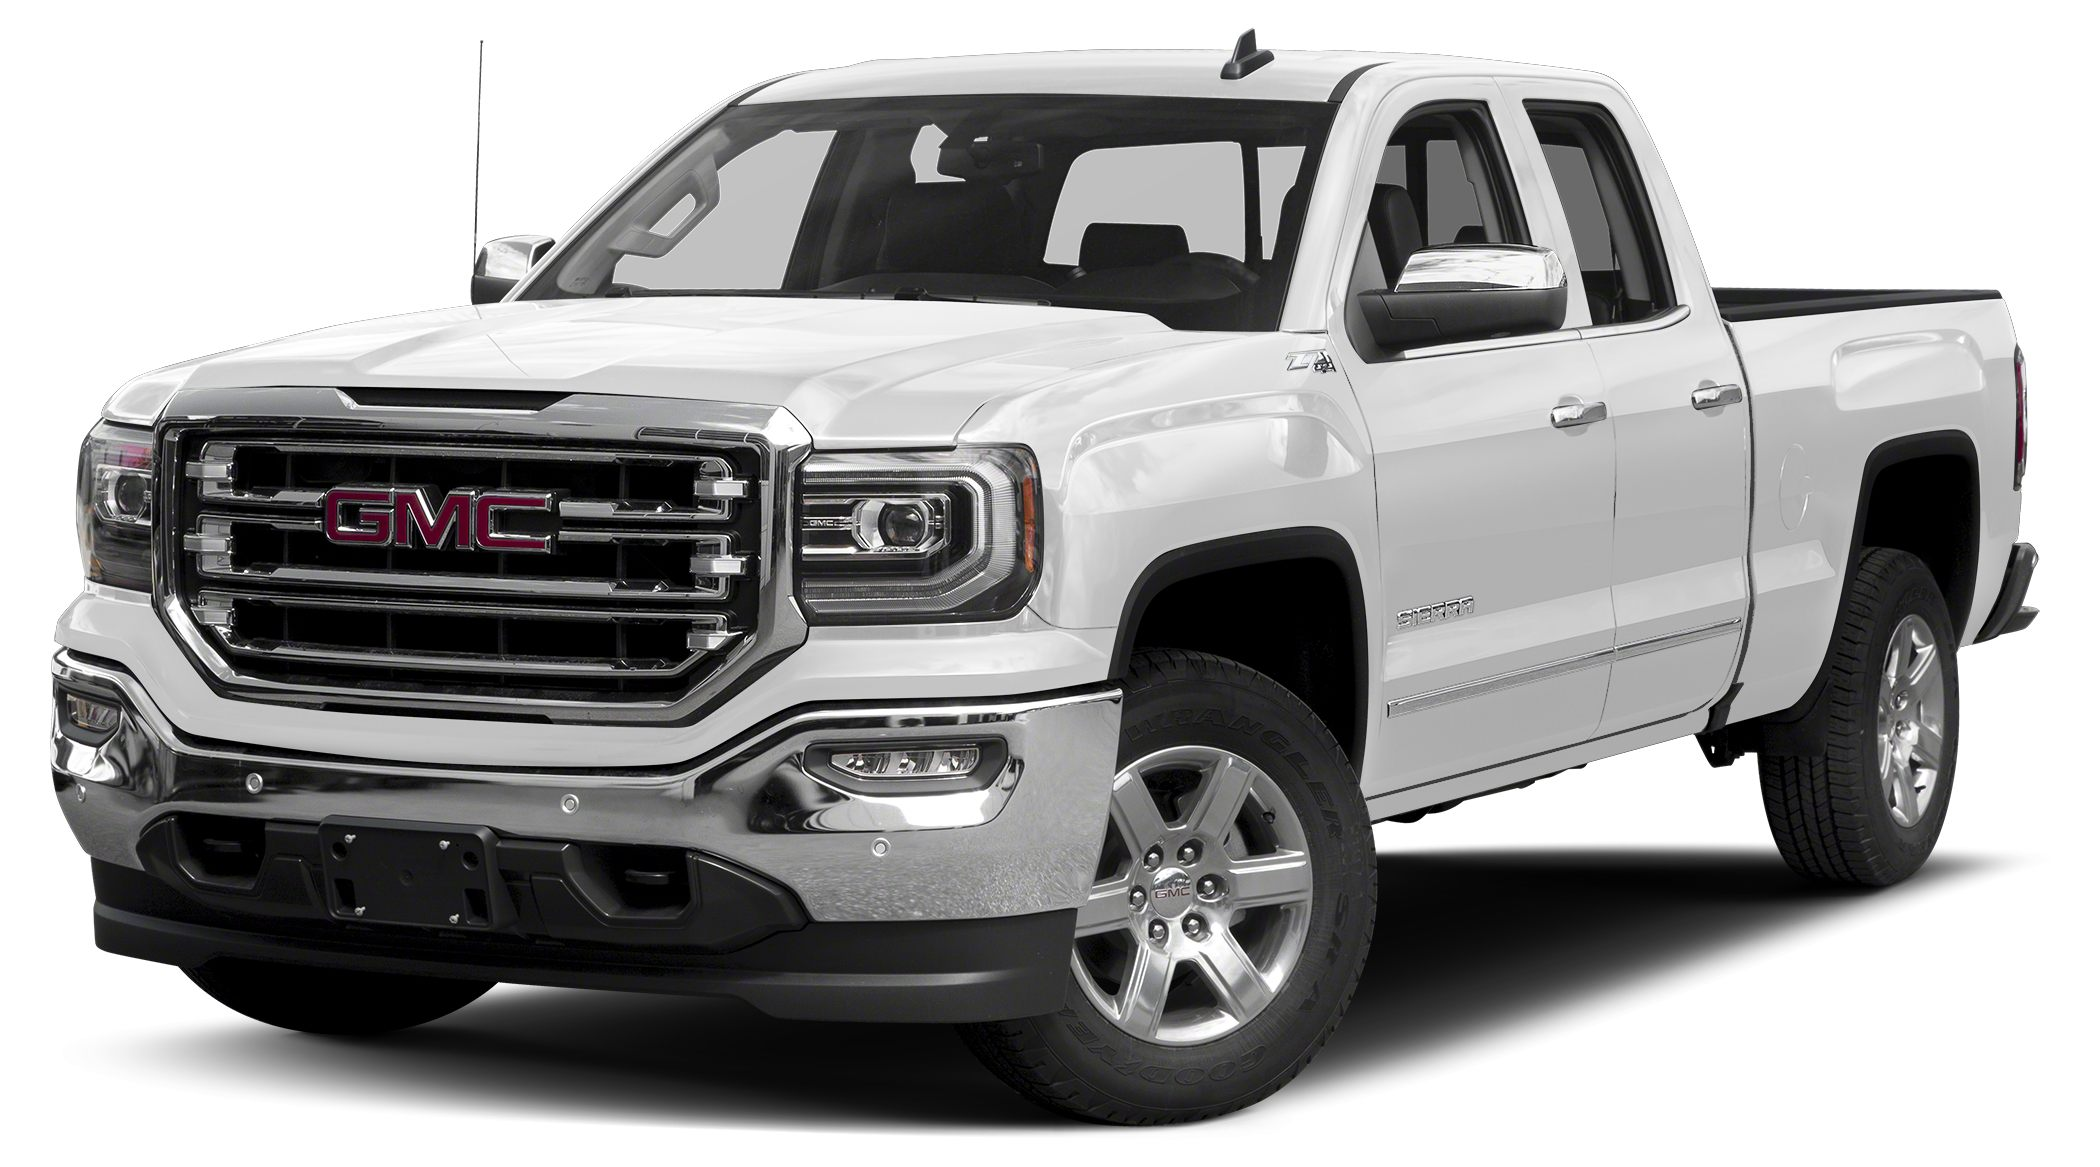 2018 GMC Sierra 1500 SLT This 2018 GMC Sierra 1500 SLT is a great option for folks looking for top